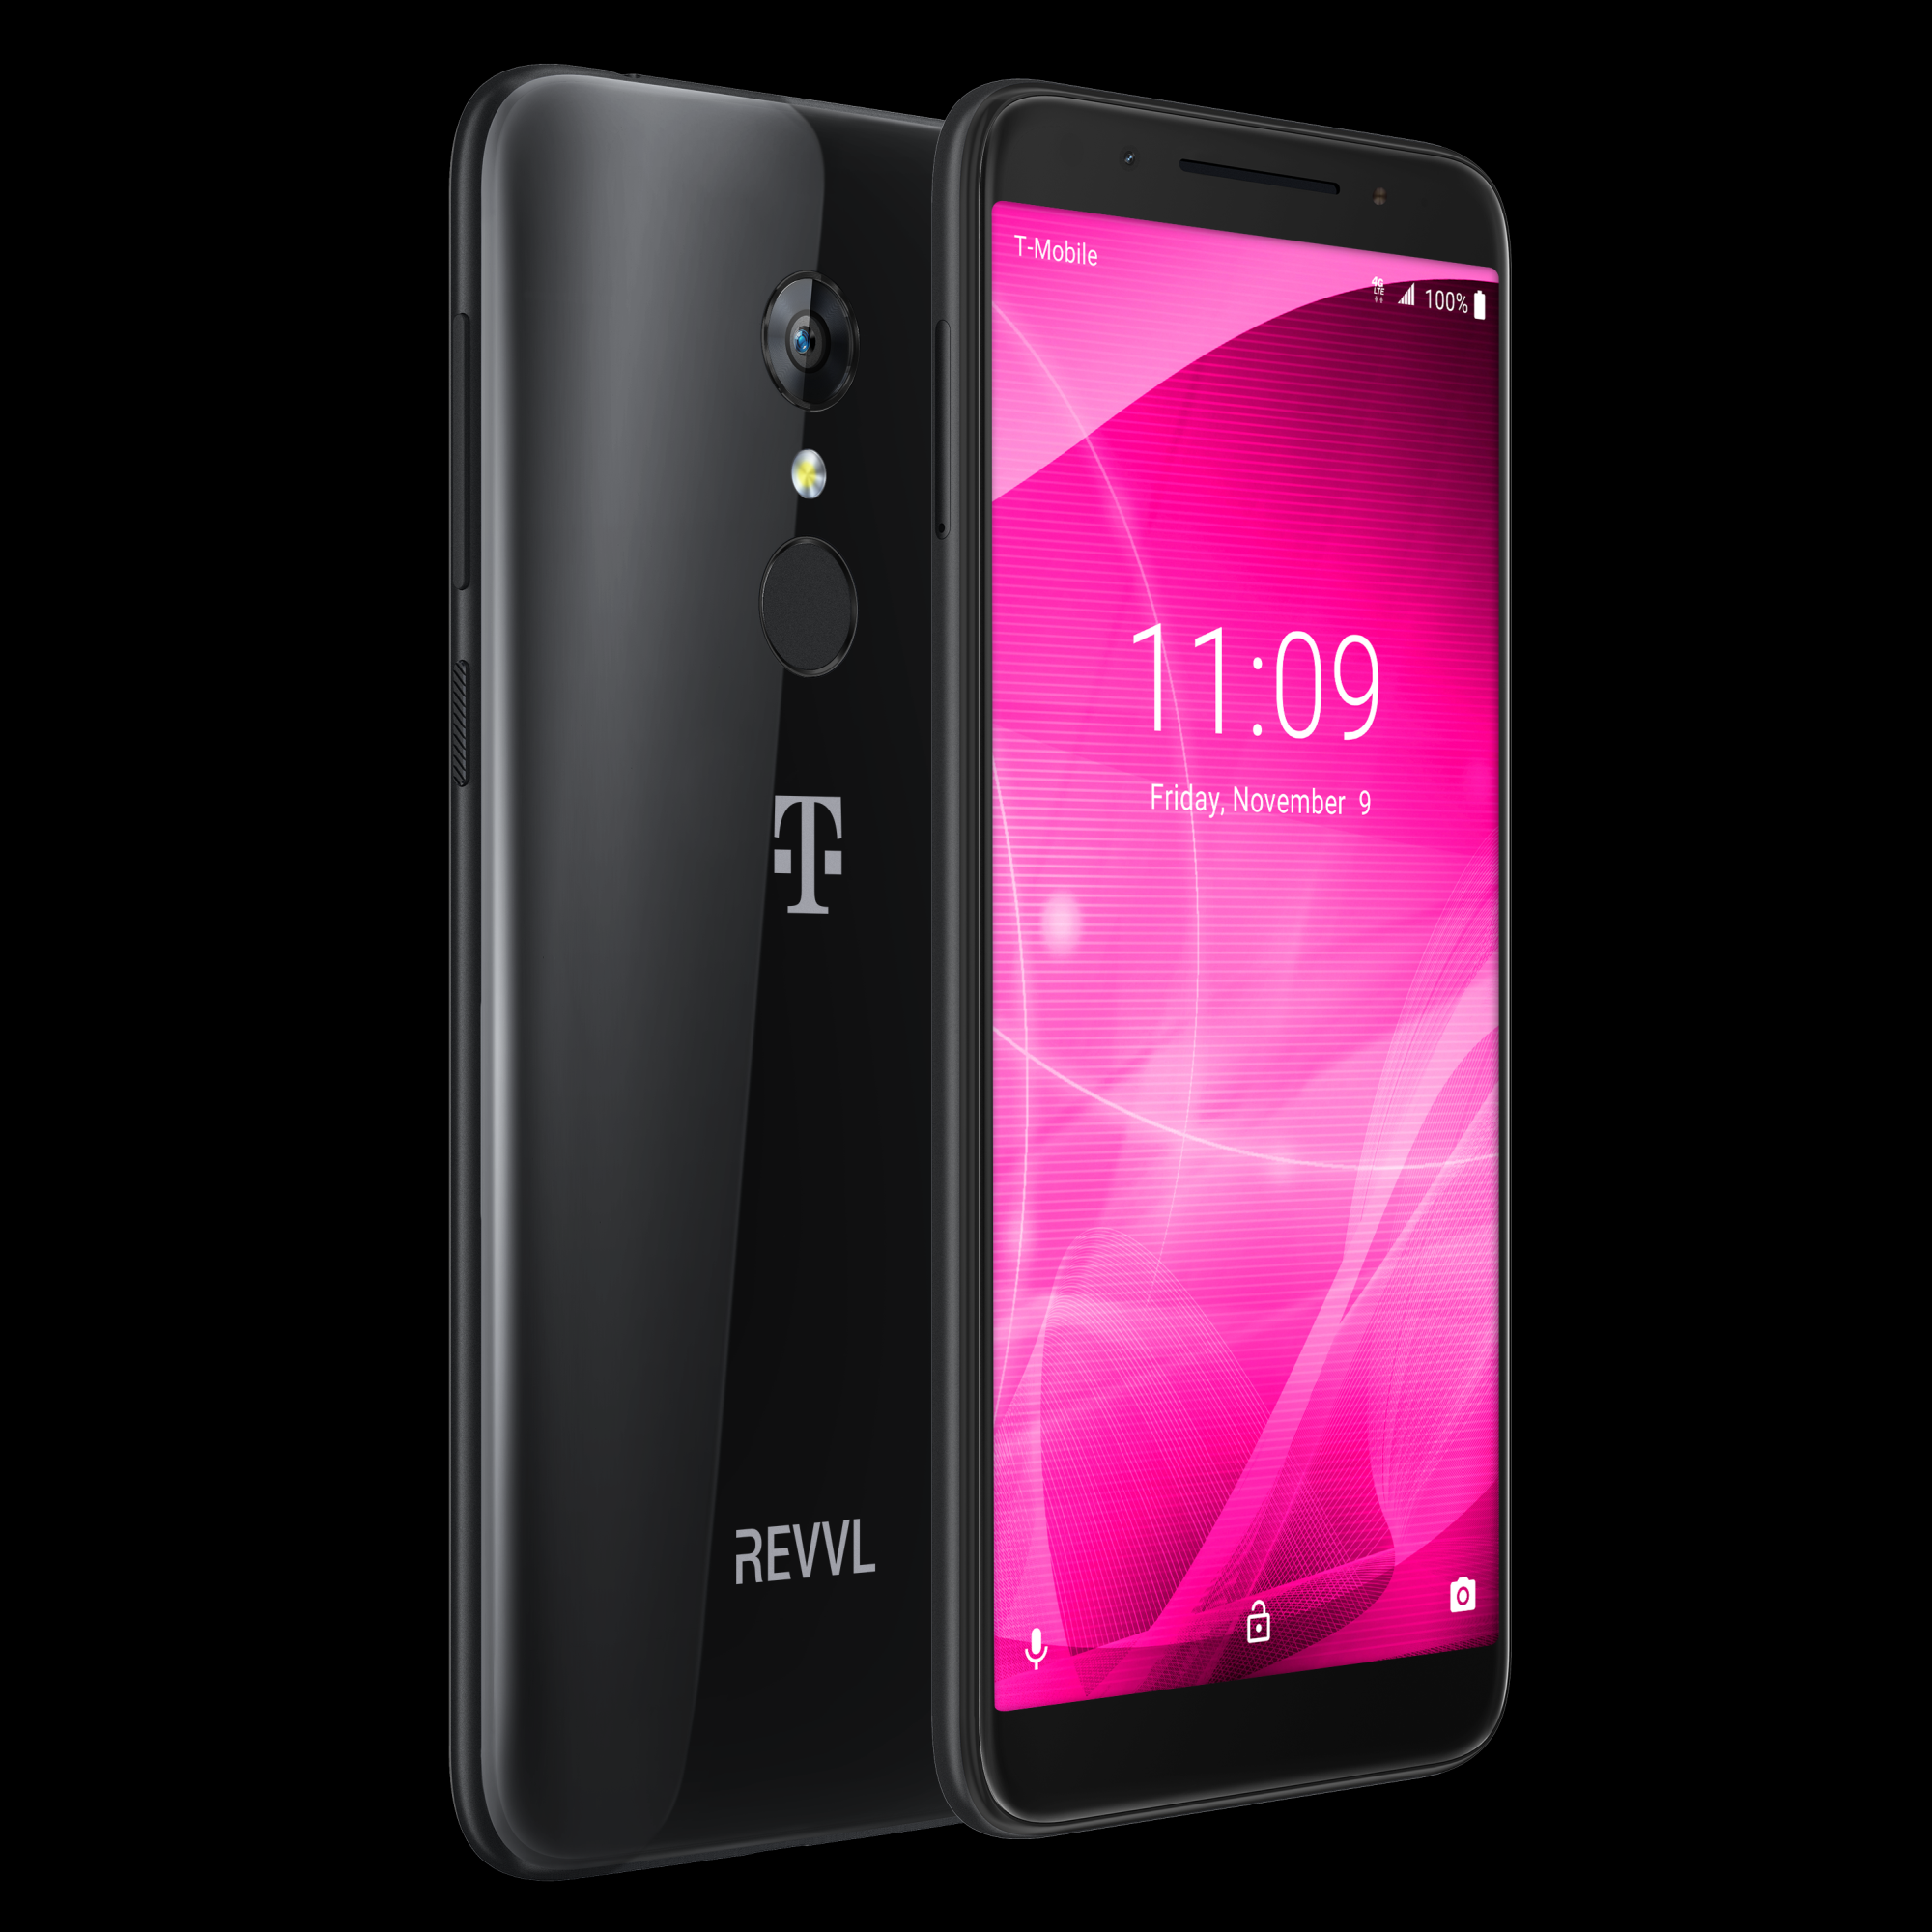 T-Mobile REVVL 2 Plus: All you need to know